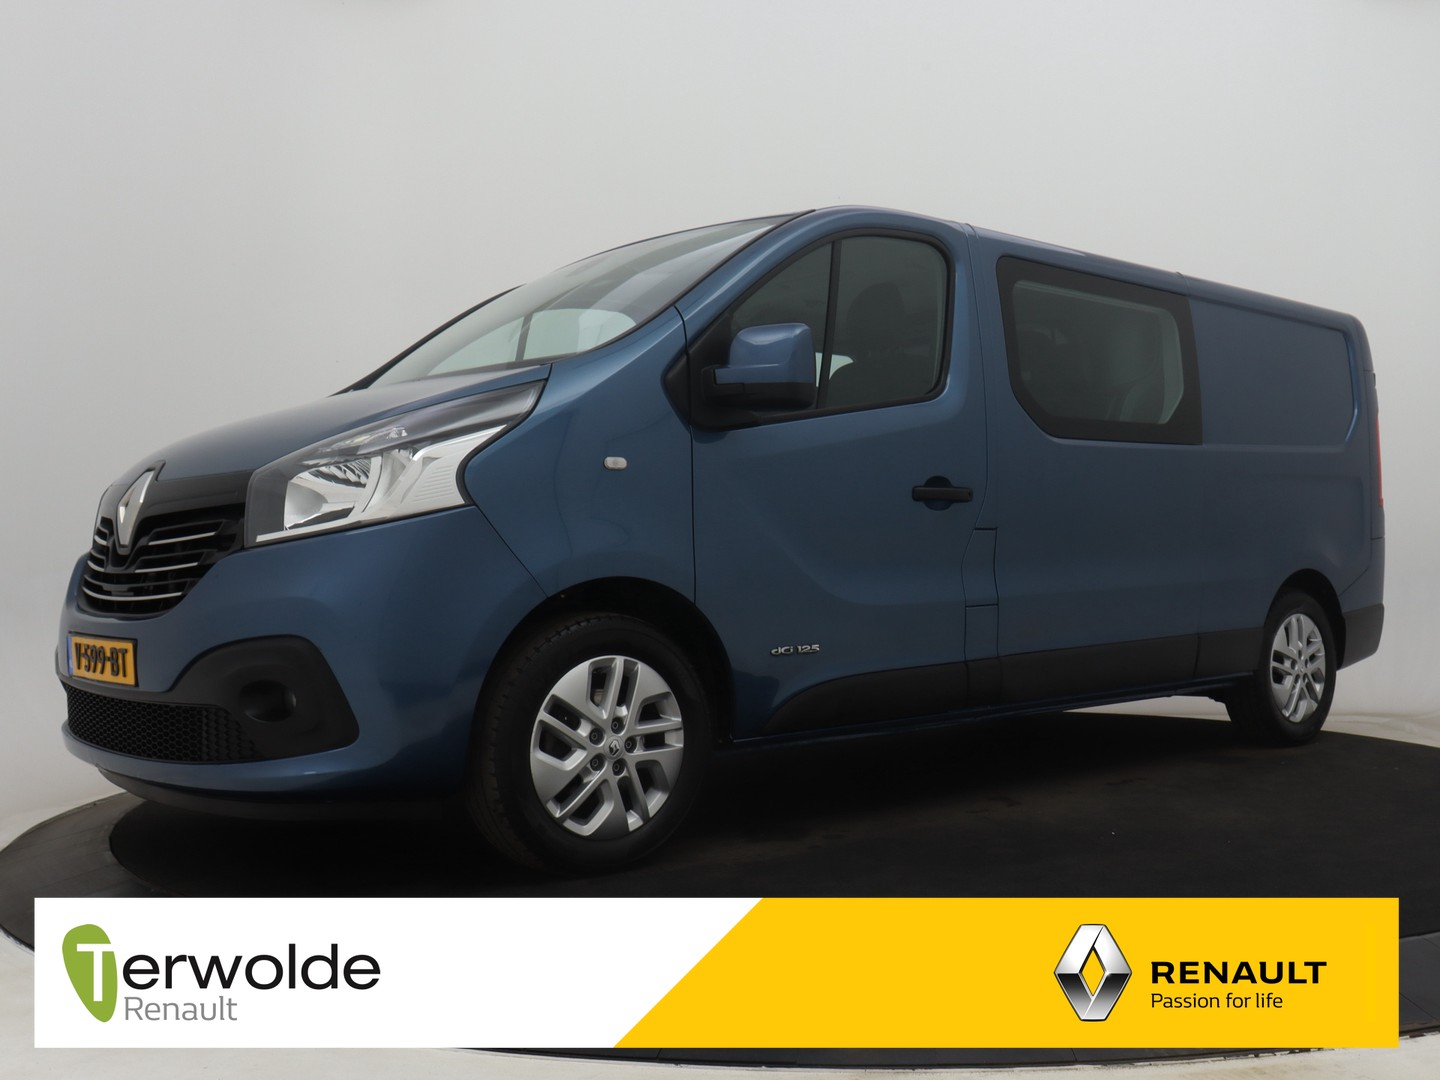 Renault Trafic 1.6 dci 125pk t29 l2h1 dc luxe energy airco i navigatie